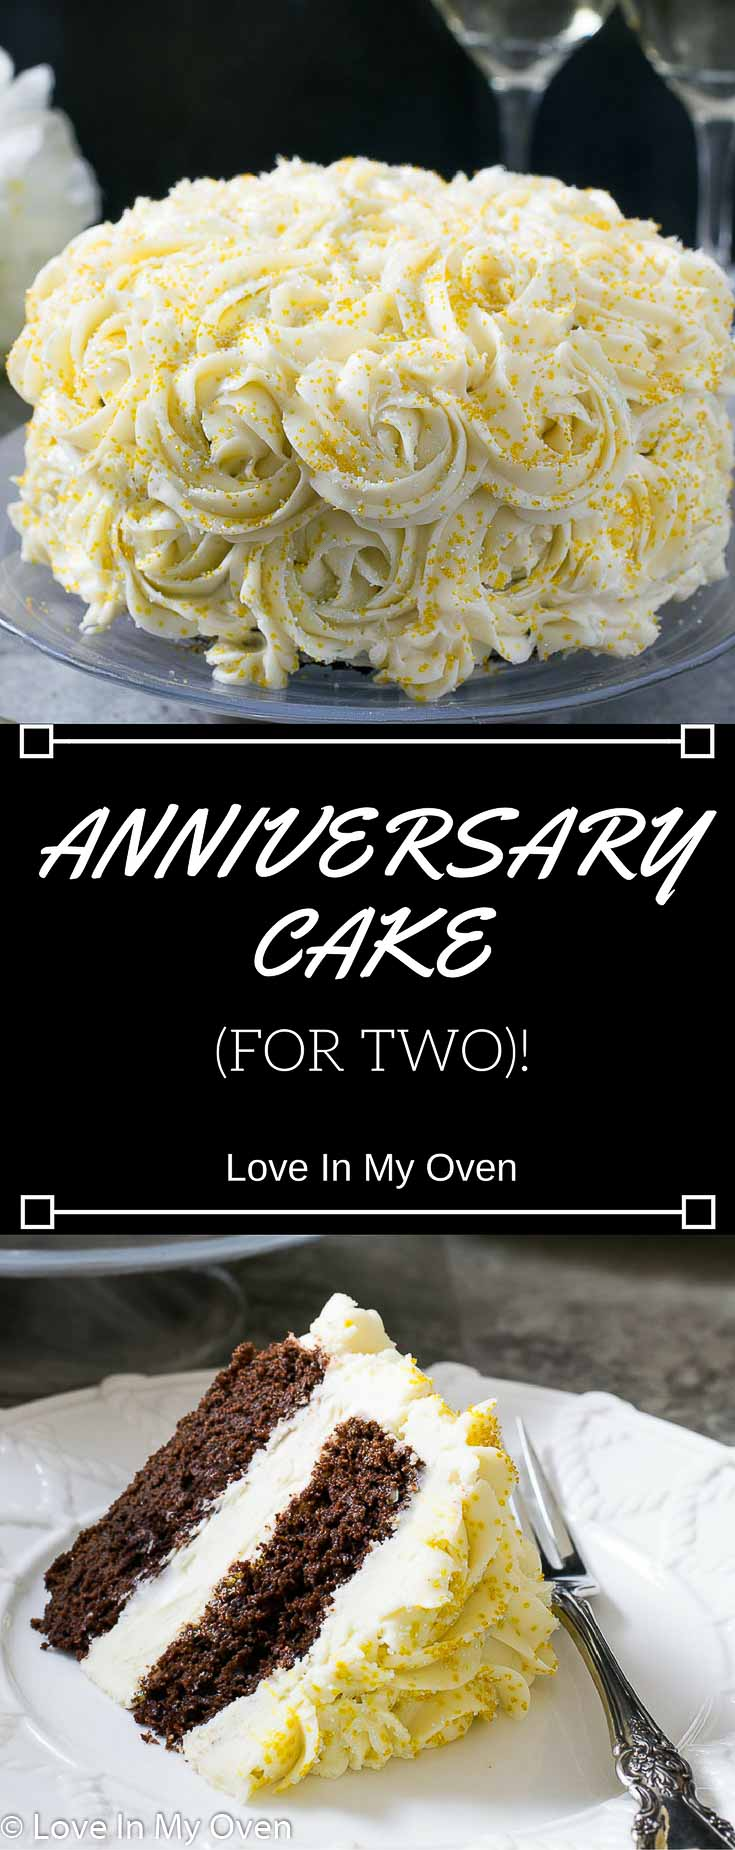 Celebrate your anniversary, just the two of you, with the most perfect chocolate cake adorned with cream cheese icing - in miniature form!